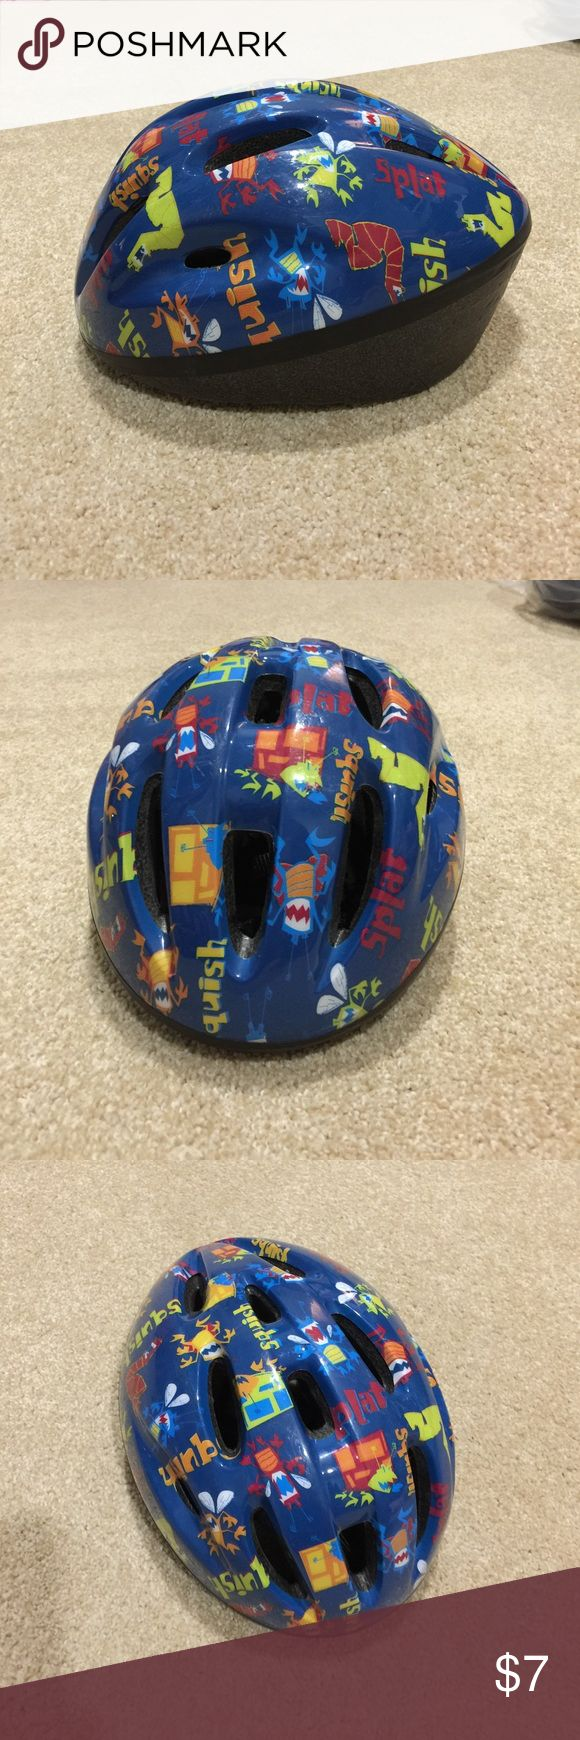 Boy's Bike Helmet Boy's blue Bike safety Helmet, would fit approx 4 - 6 yrs of age. Good gently used condition. No damage, tears, rips or stains. 20% off 3+ items in my closet. BUNDLE & SAVE!! Accessories Hats